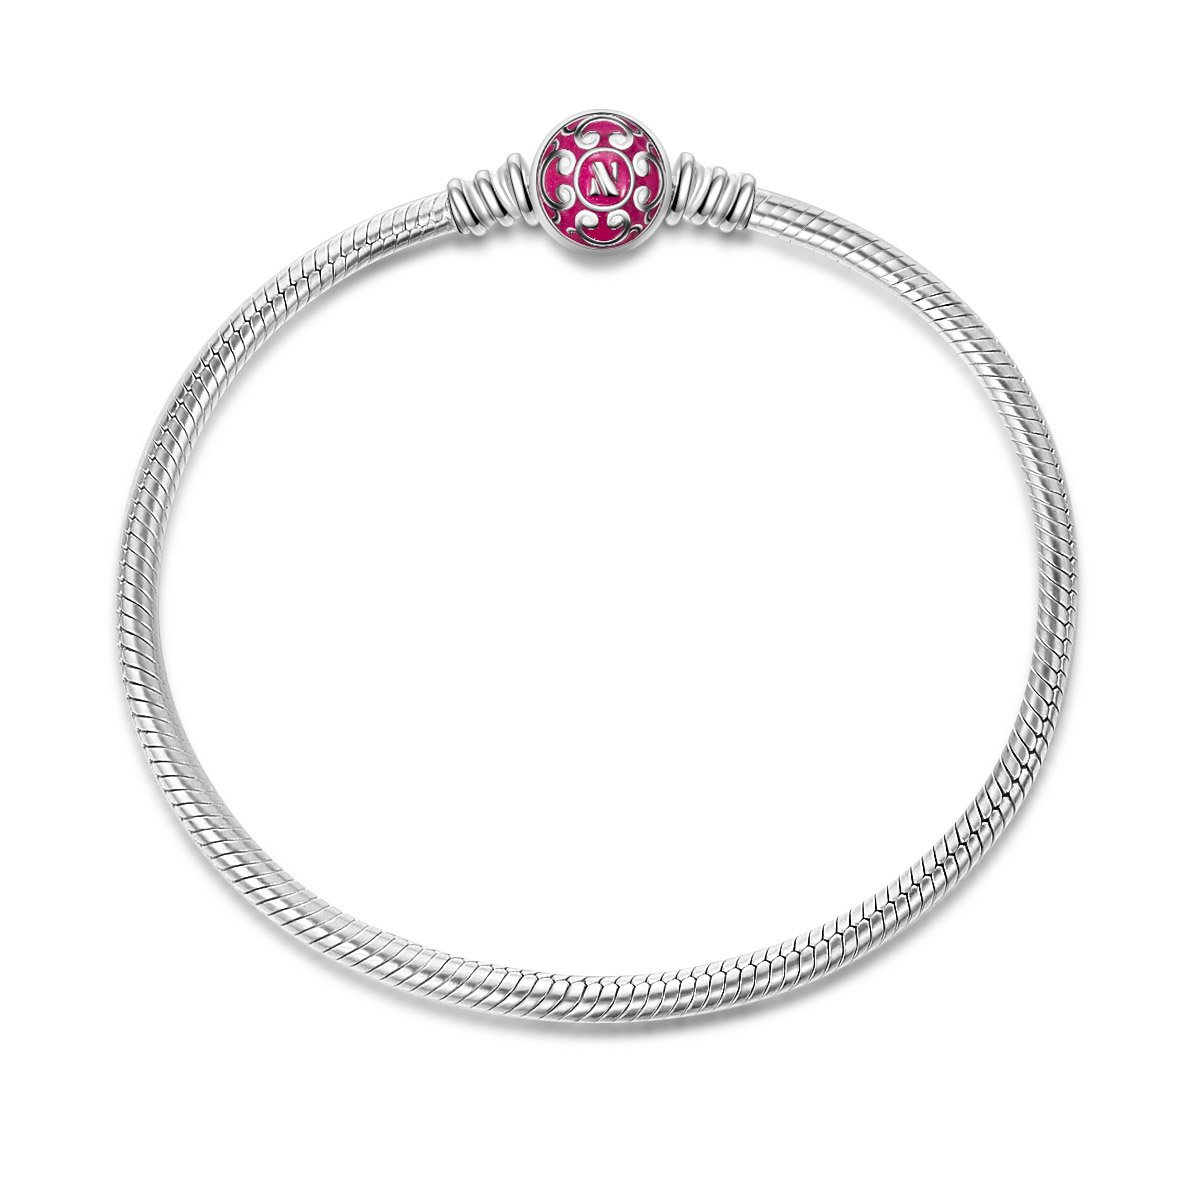 NinaQueen 925 Sterling Silver Jewelry Bangle Bracelet with Pink Snap Clasp 7.5 Inches, Birthday Anniversary Gifts for Women Wife Mom Bracelets for Charms Teen Girls Niece Daughter Schoolmates Teachers